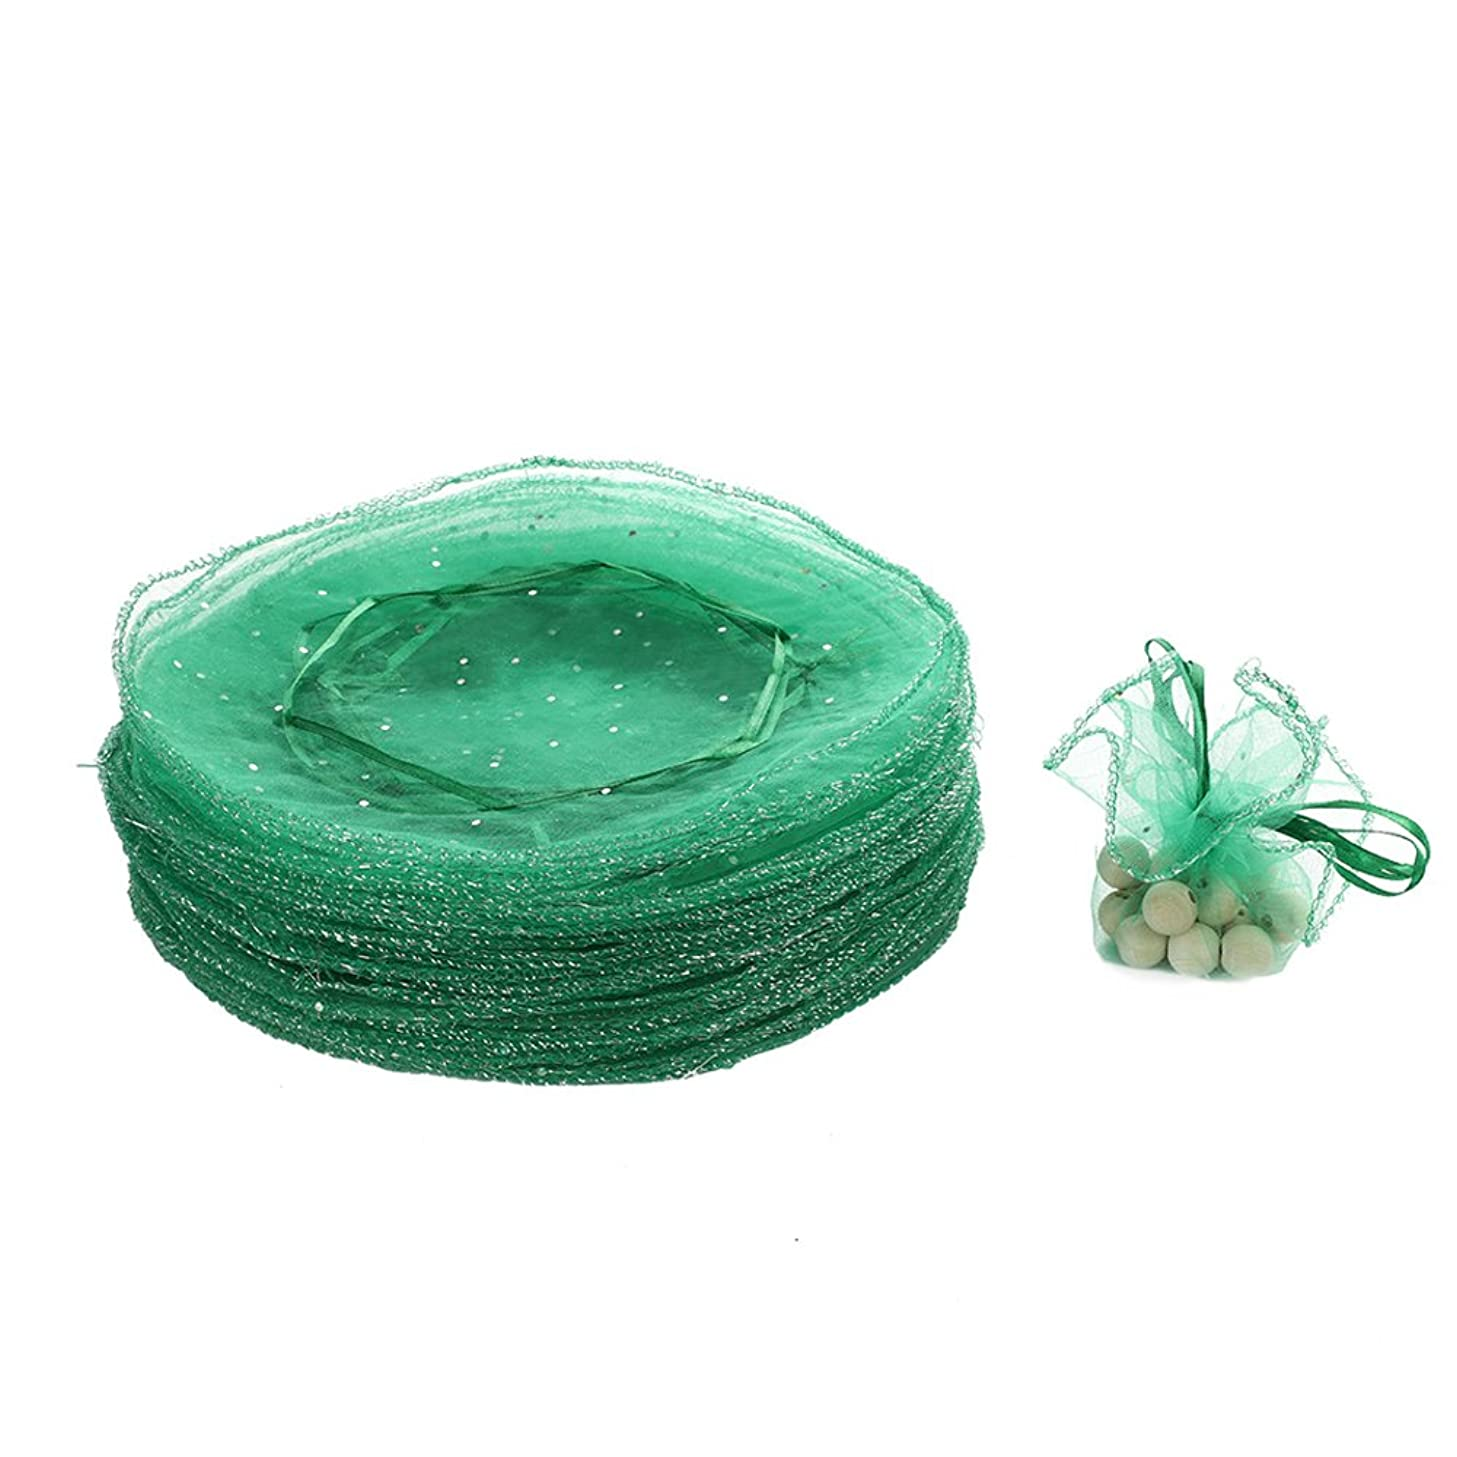 Dealglad 50pcs 25cm Round Drawstring Organza Jewelry Candy Pouch Christmas Wedding Party Favor Gift Packaging Bags (Green)